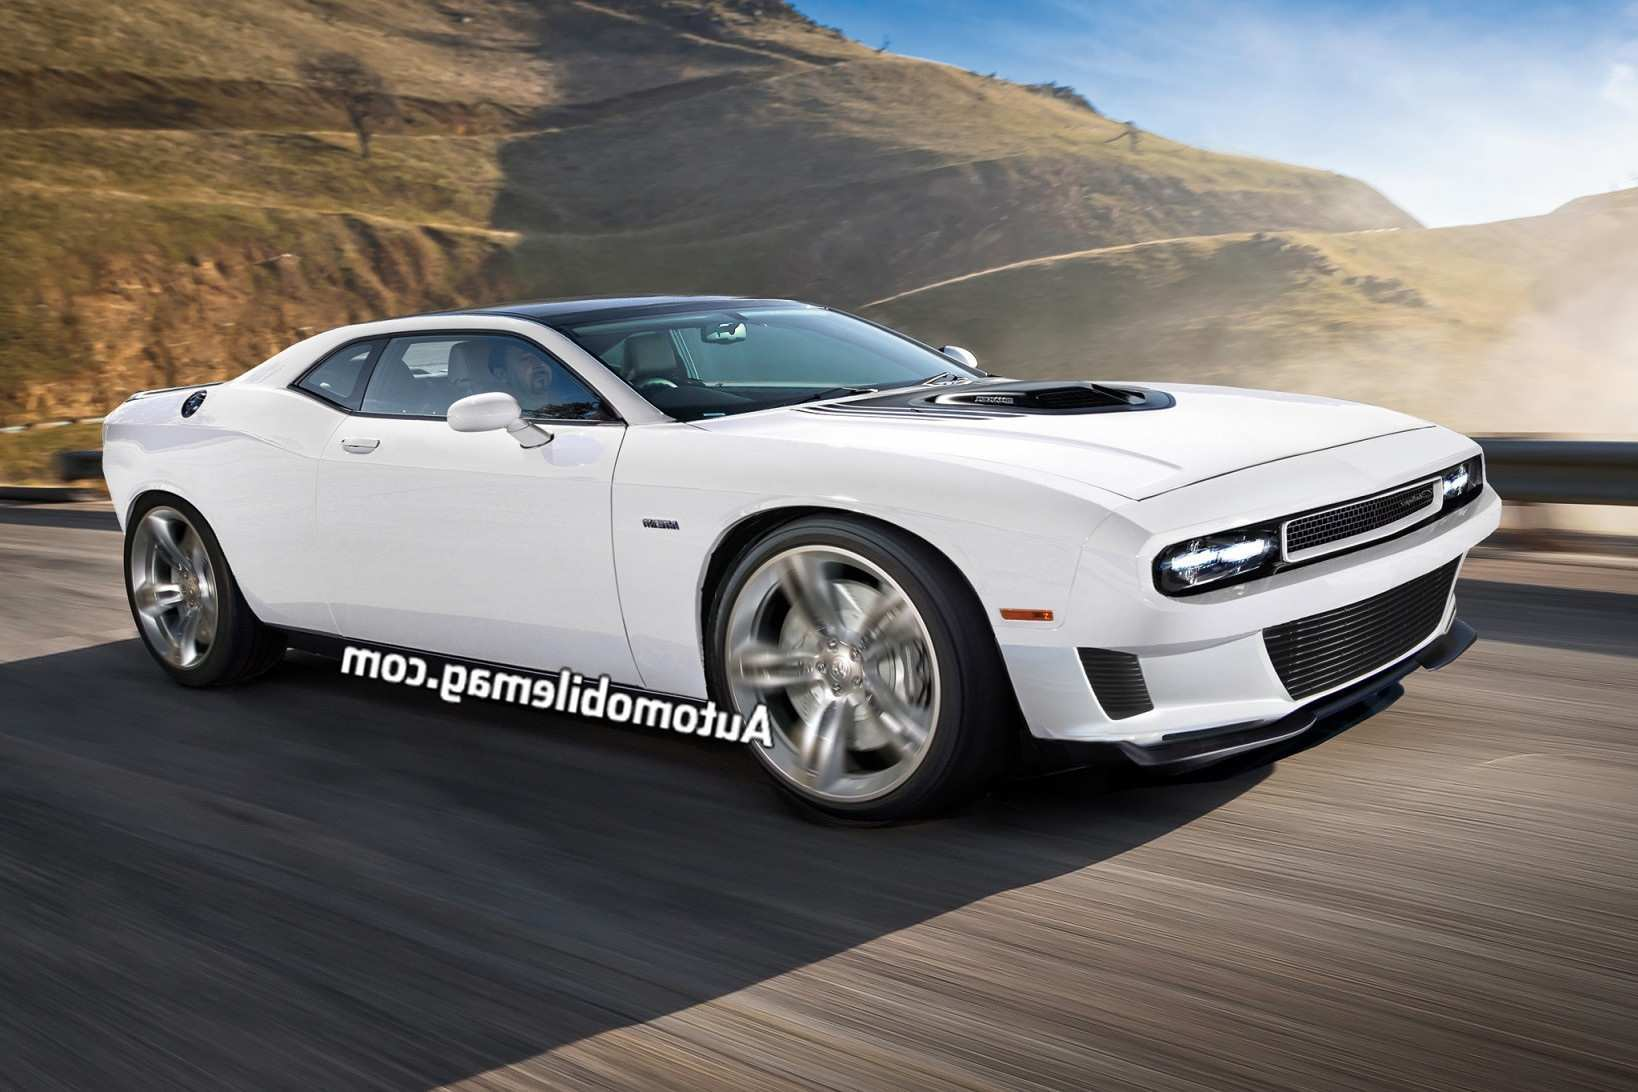 39 Best Review Dodge Challenger New Model 2020 Overview with Dodge Challenger New Model 2020